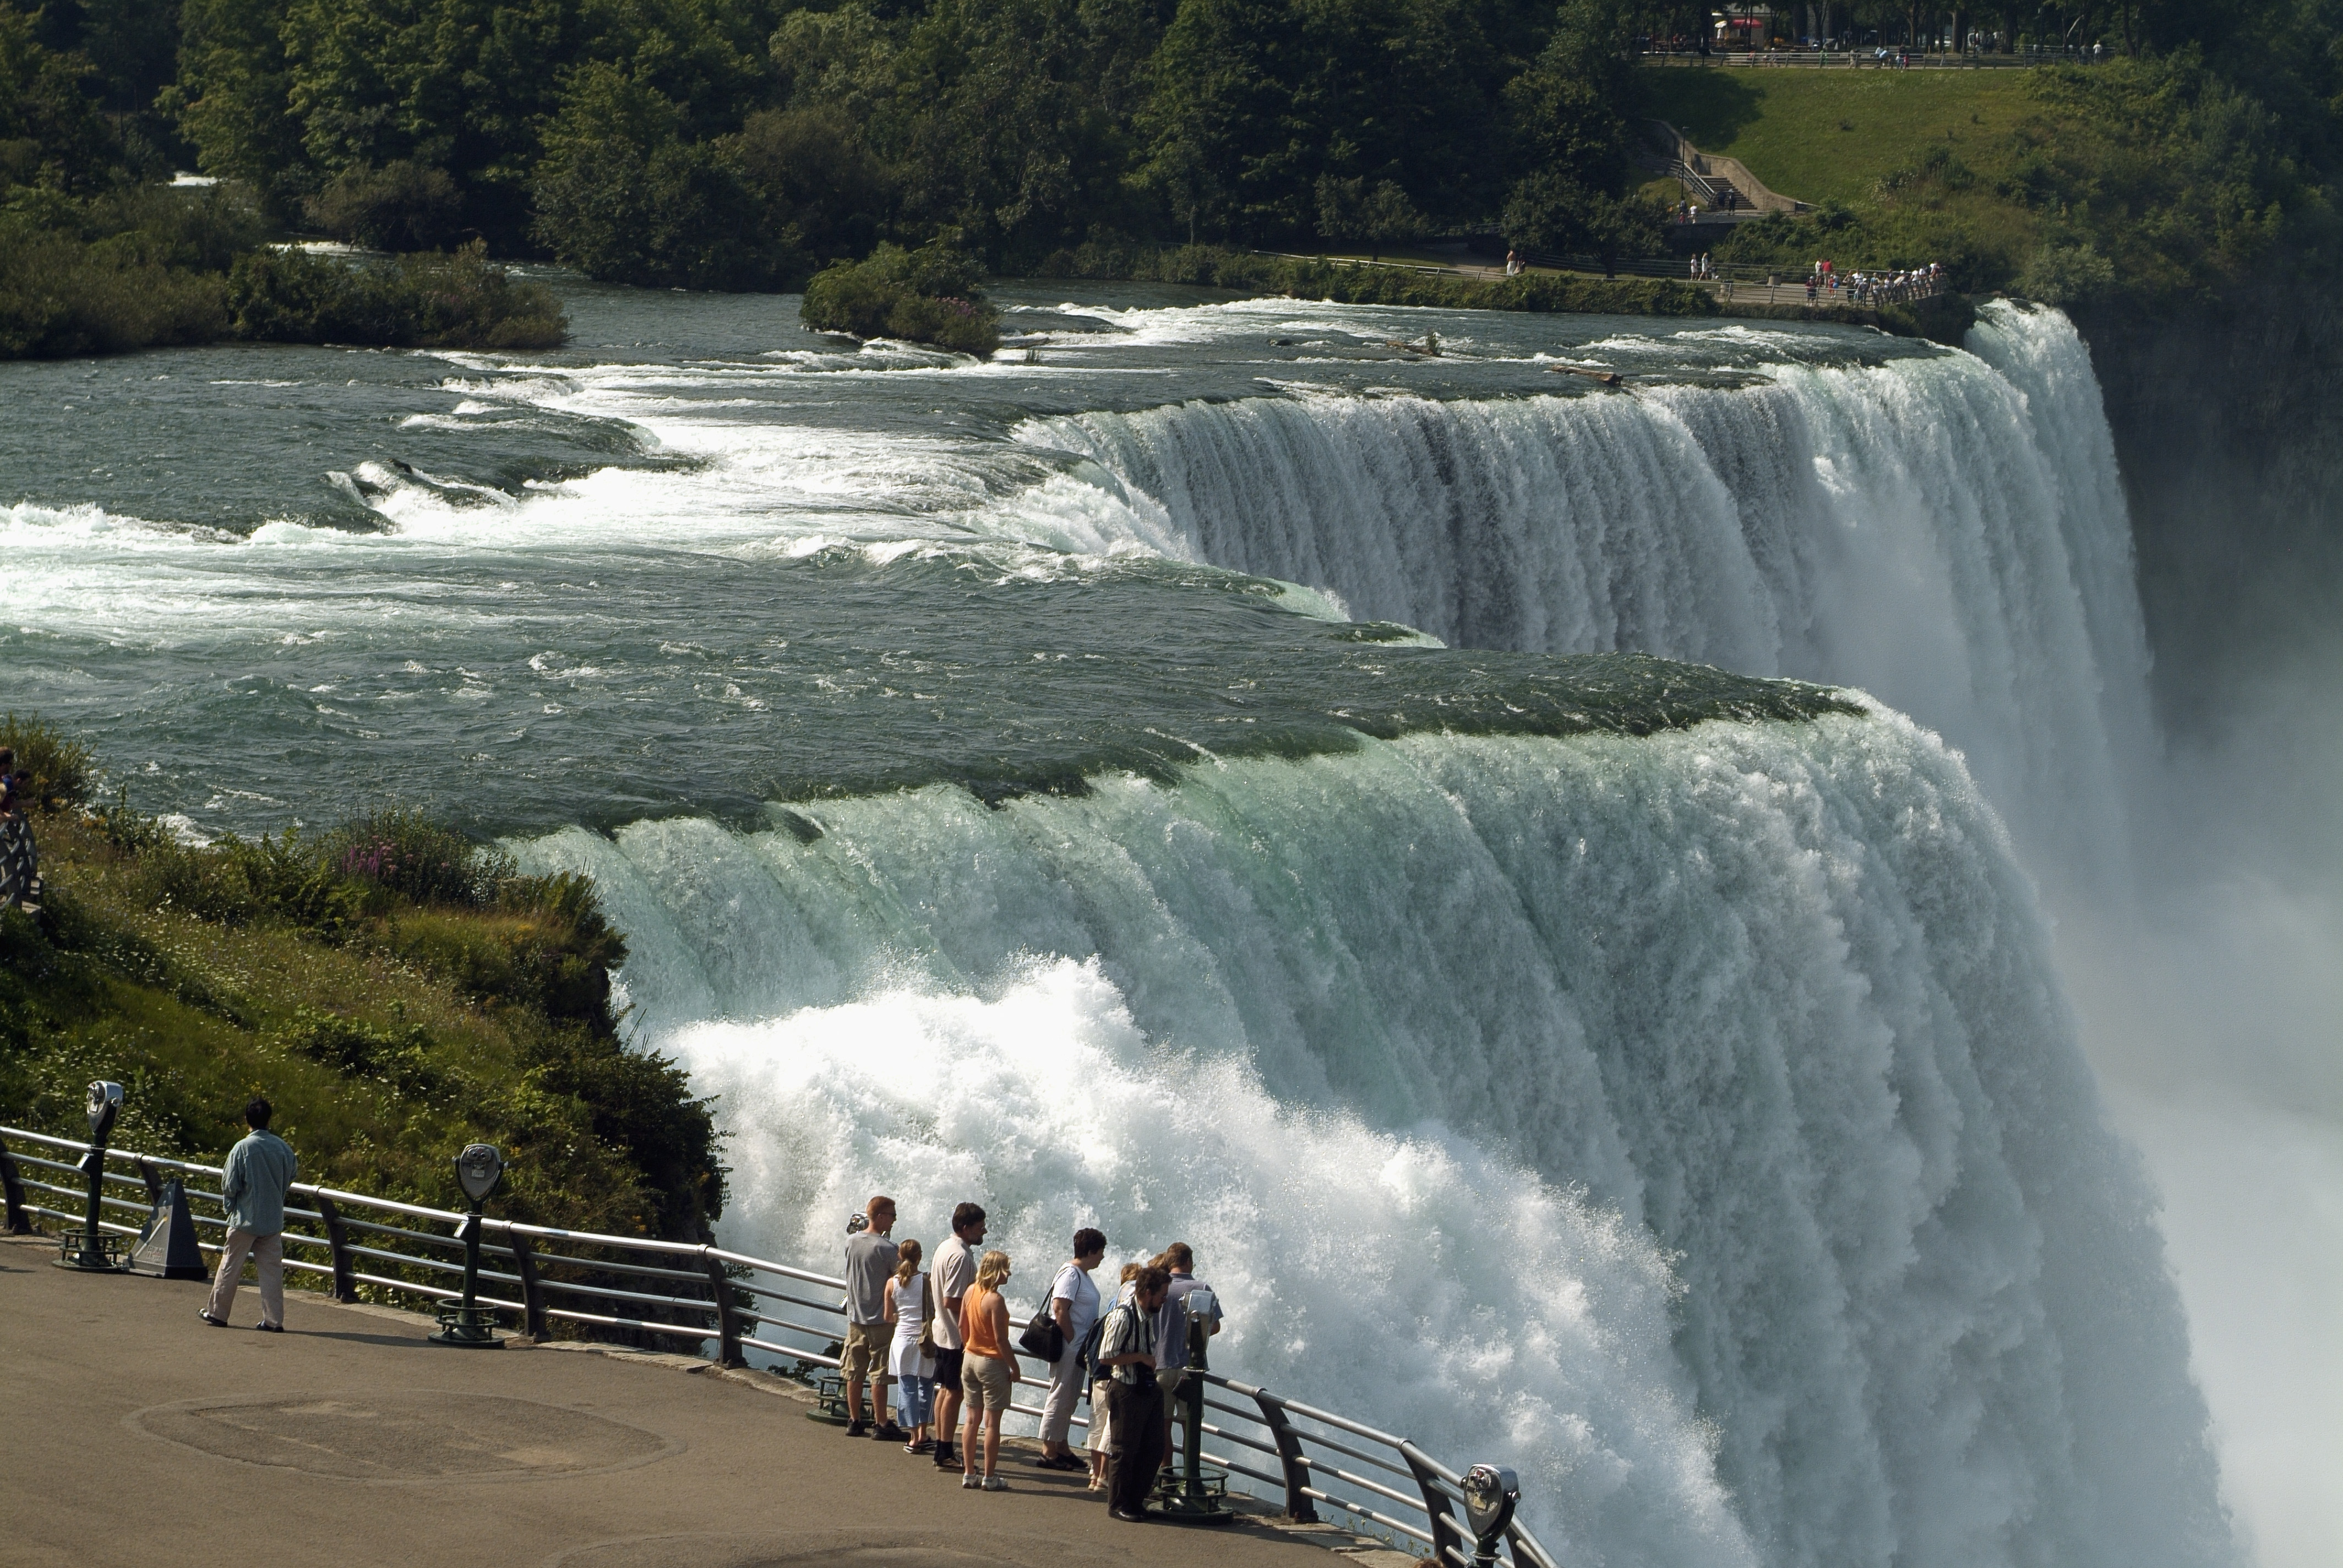 Touristsatniagarafalls New York Pictures New York HISTORYcom - Is new york in the united states